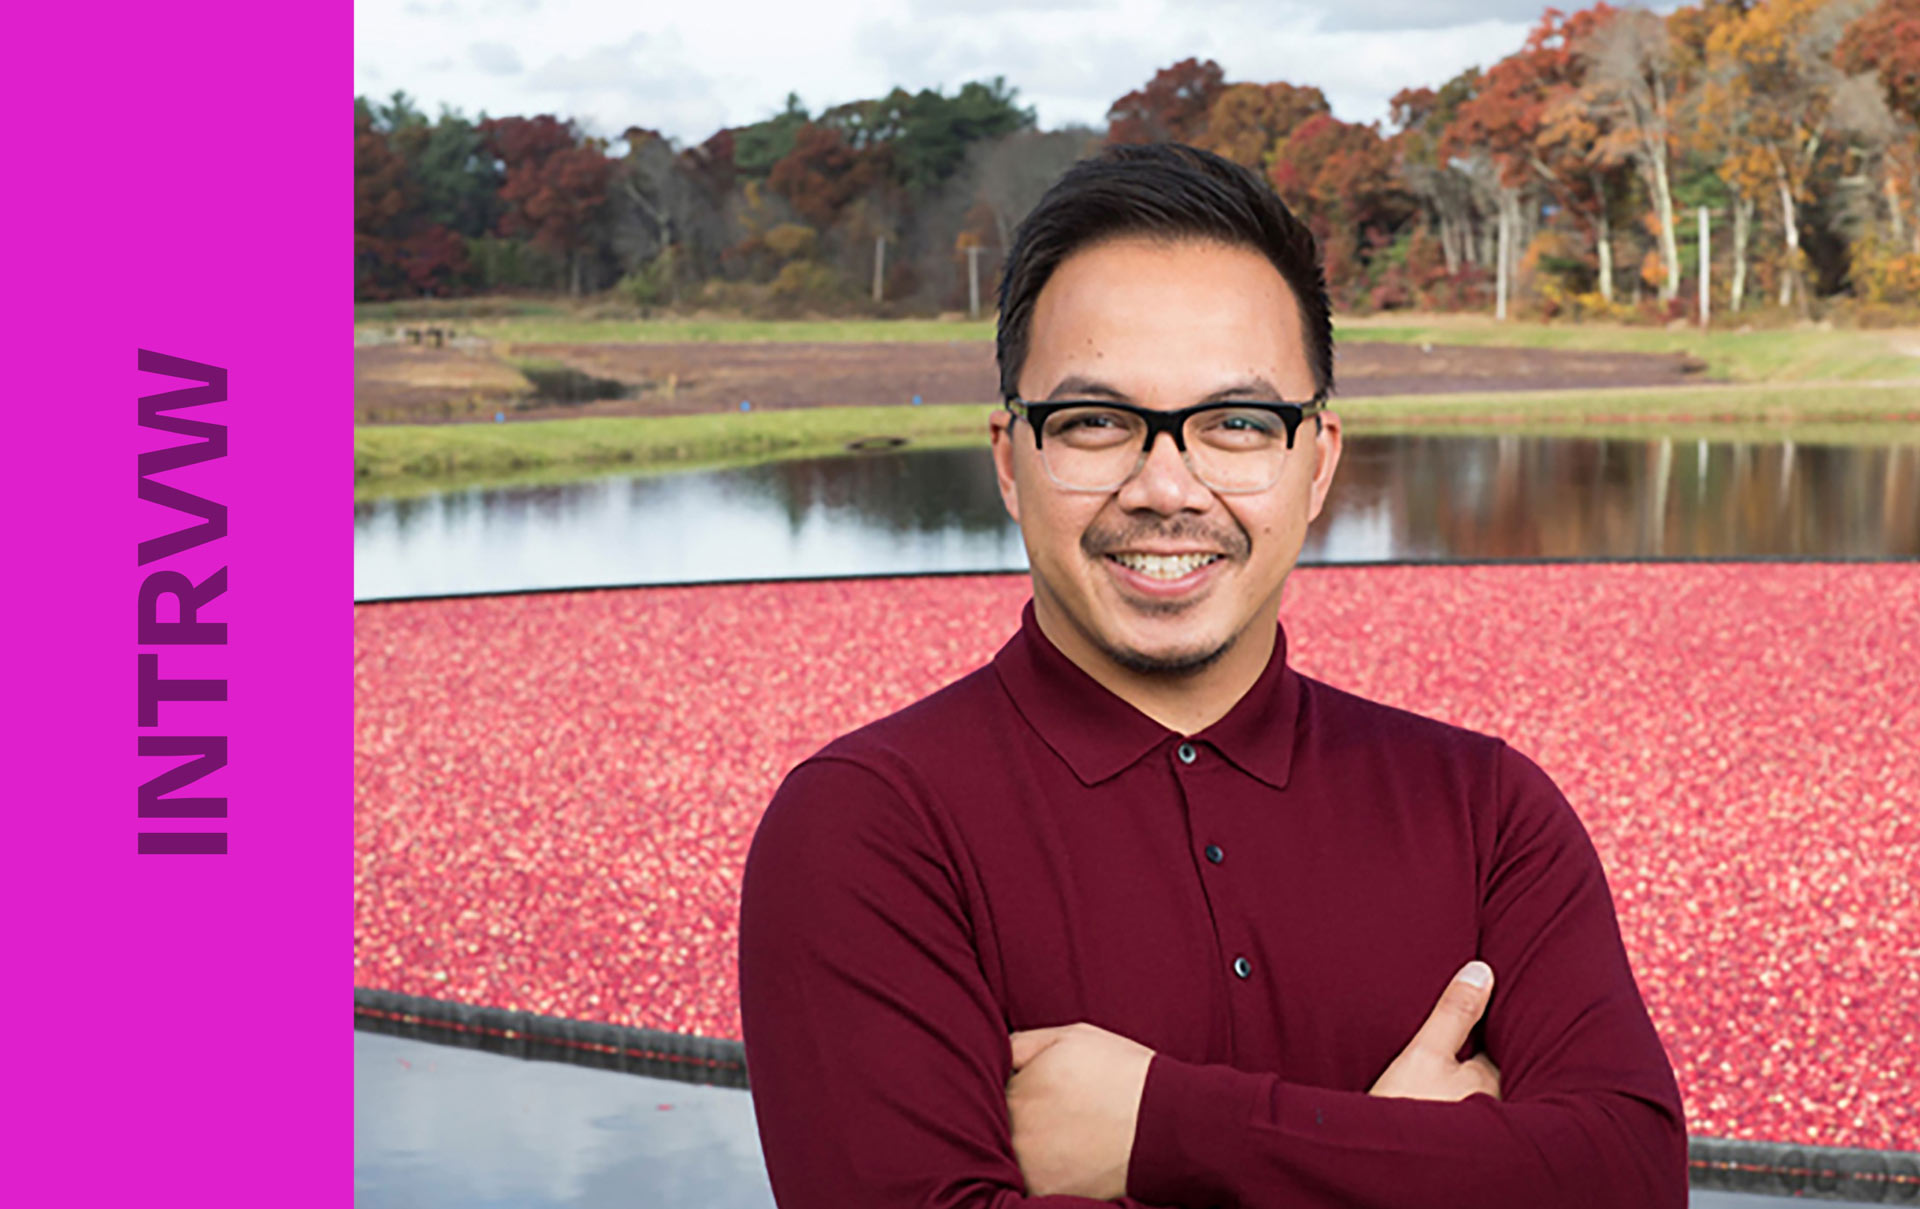 Interview: Rizal Hamdallah on Innovation and Ocean Spray's First DTC Product